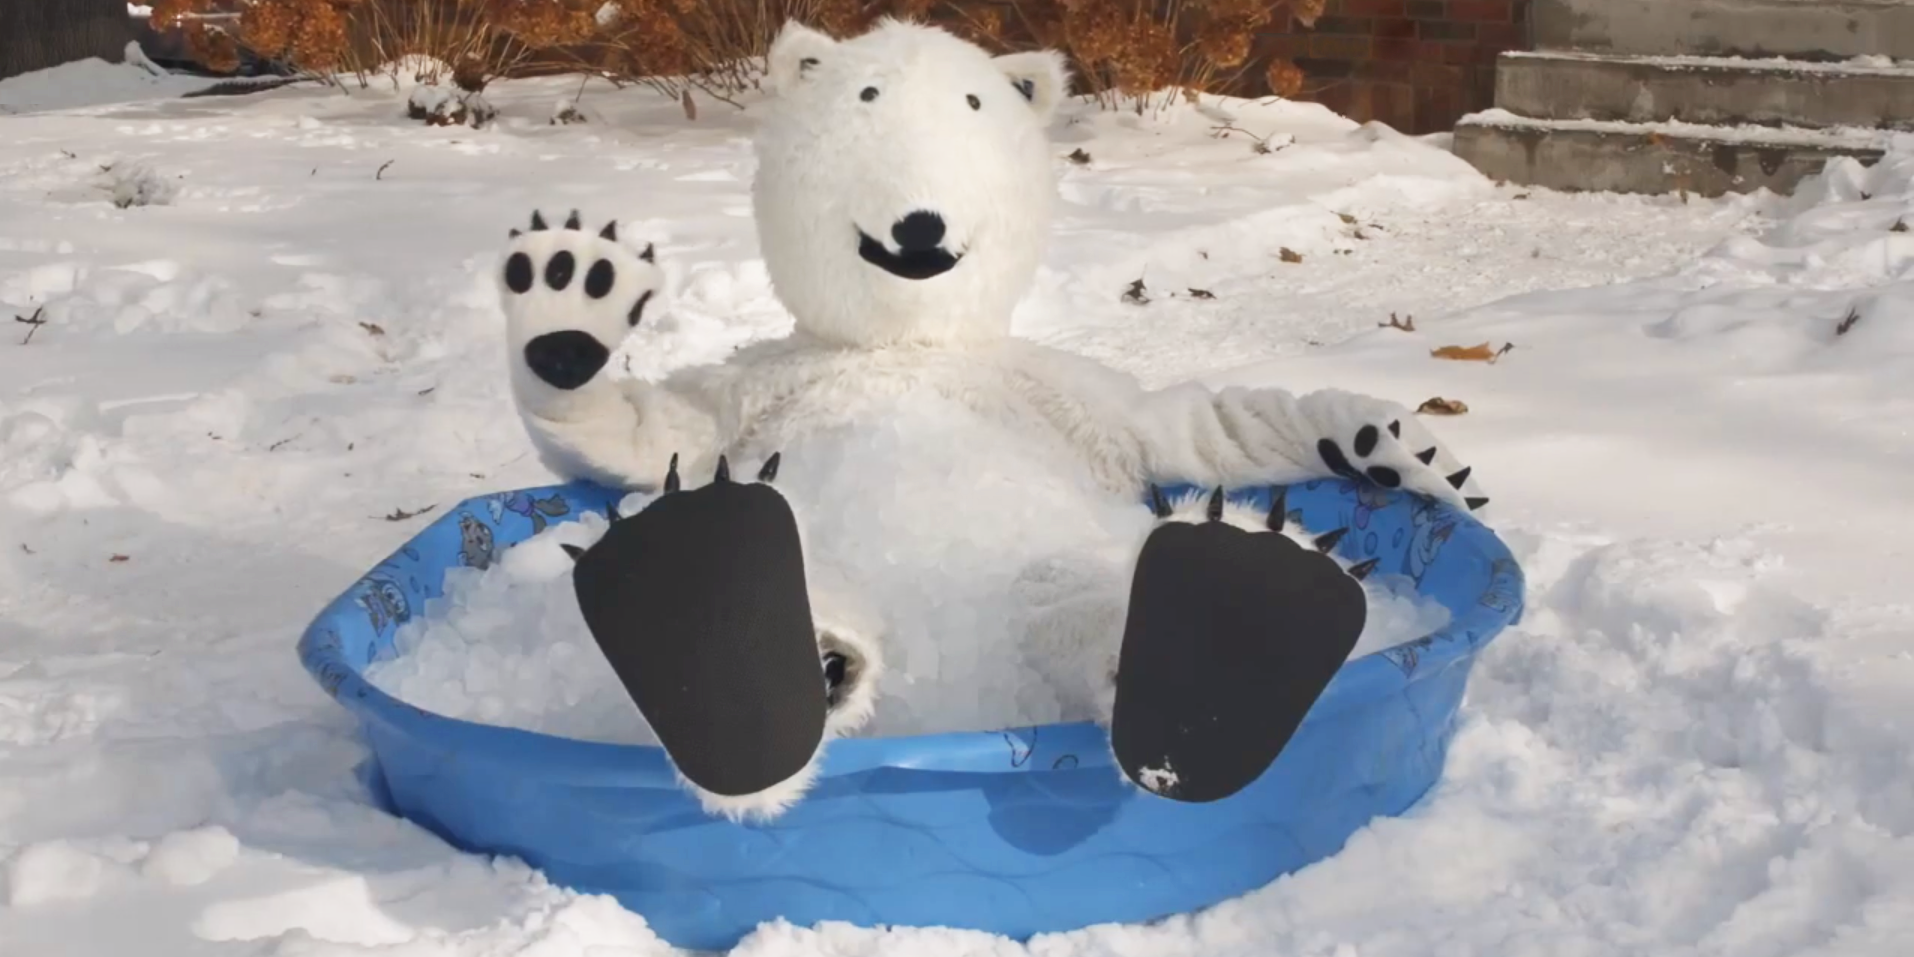 Snowflake chills in a kiddie pool